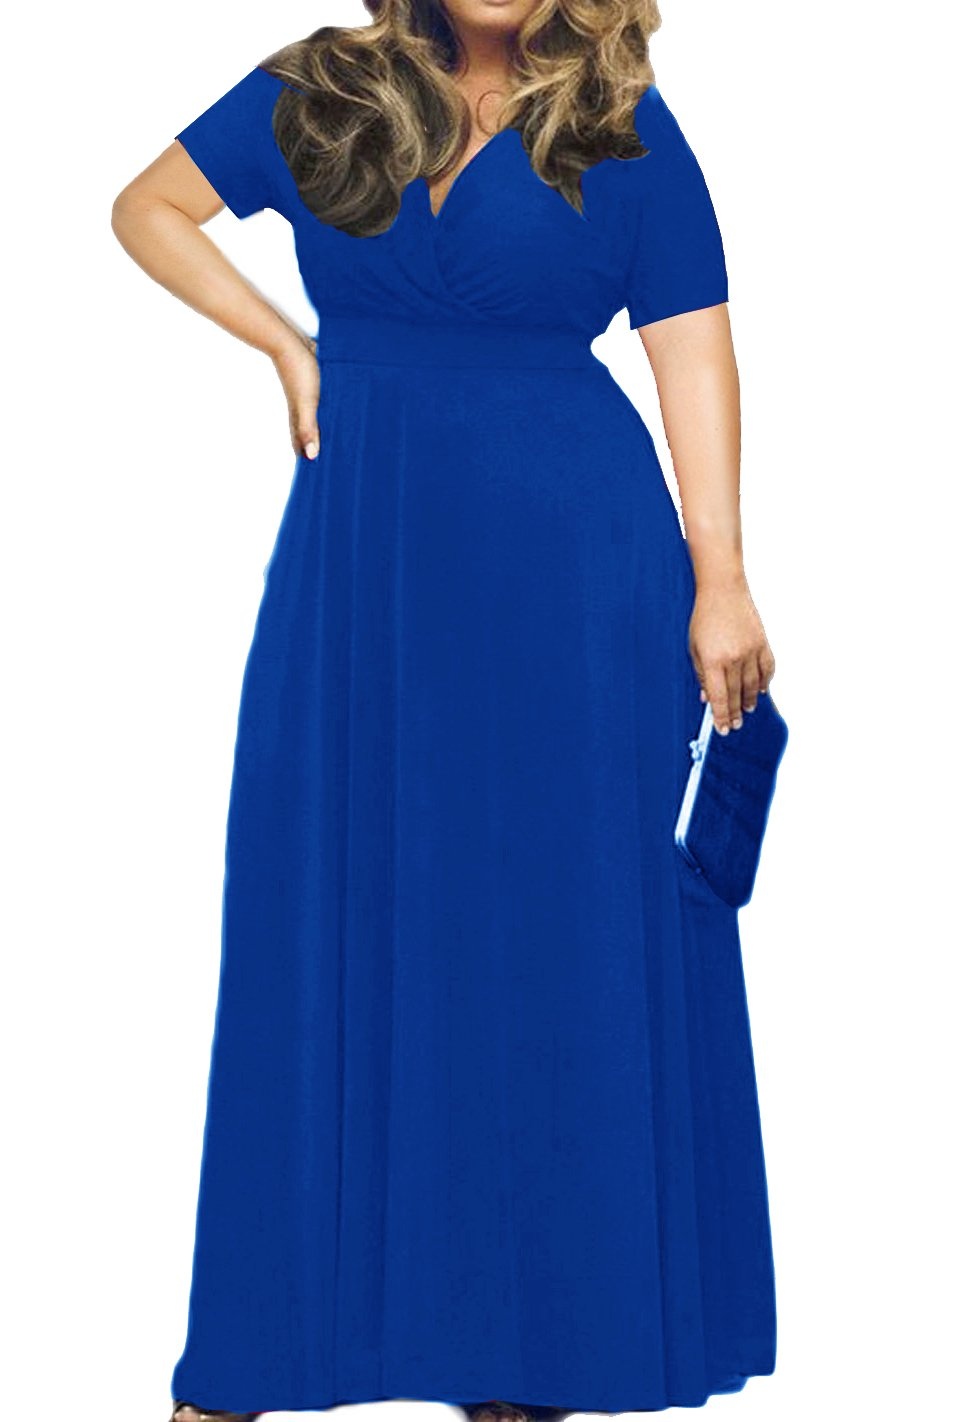 82a8fd6e9a315 POSESHE Women's Short Sleeve Plus Size Evening Party Maxi Dress Gown Royal  Blue 3XL